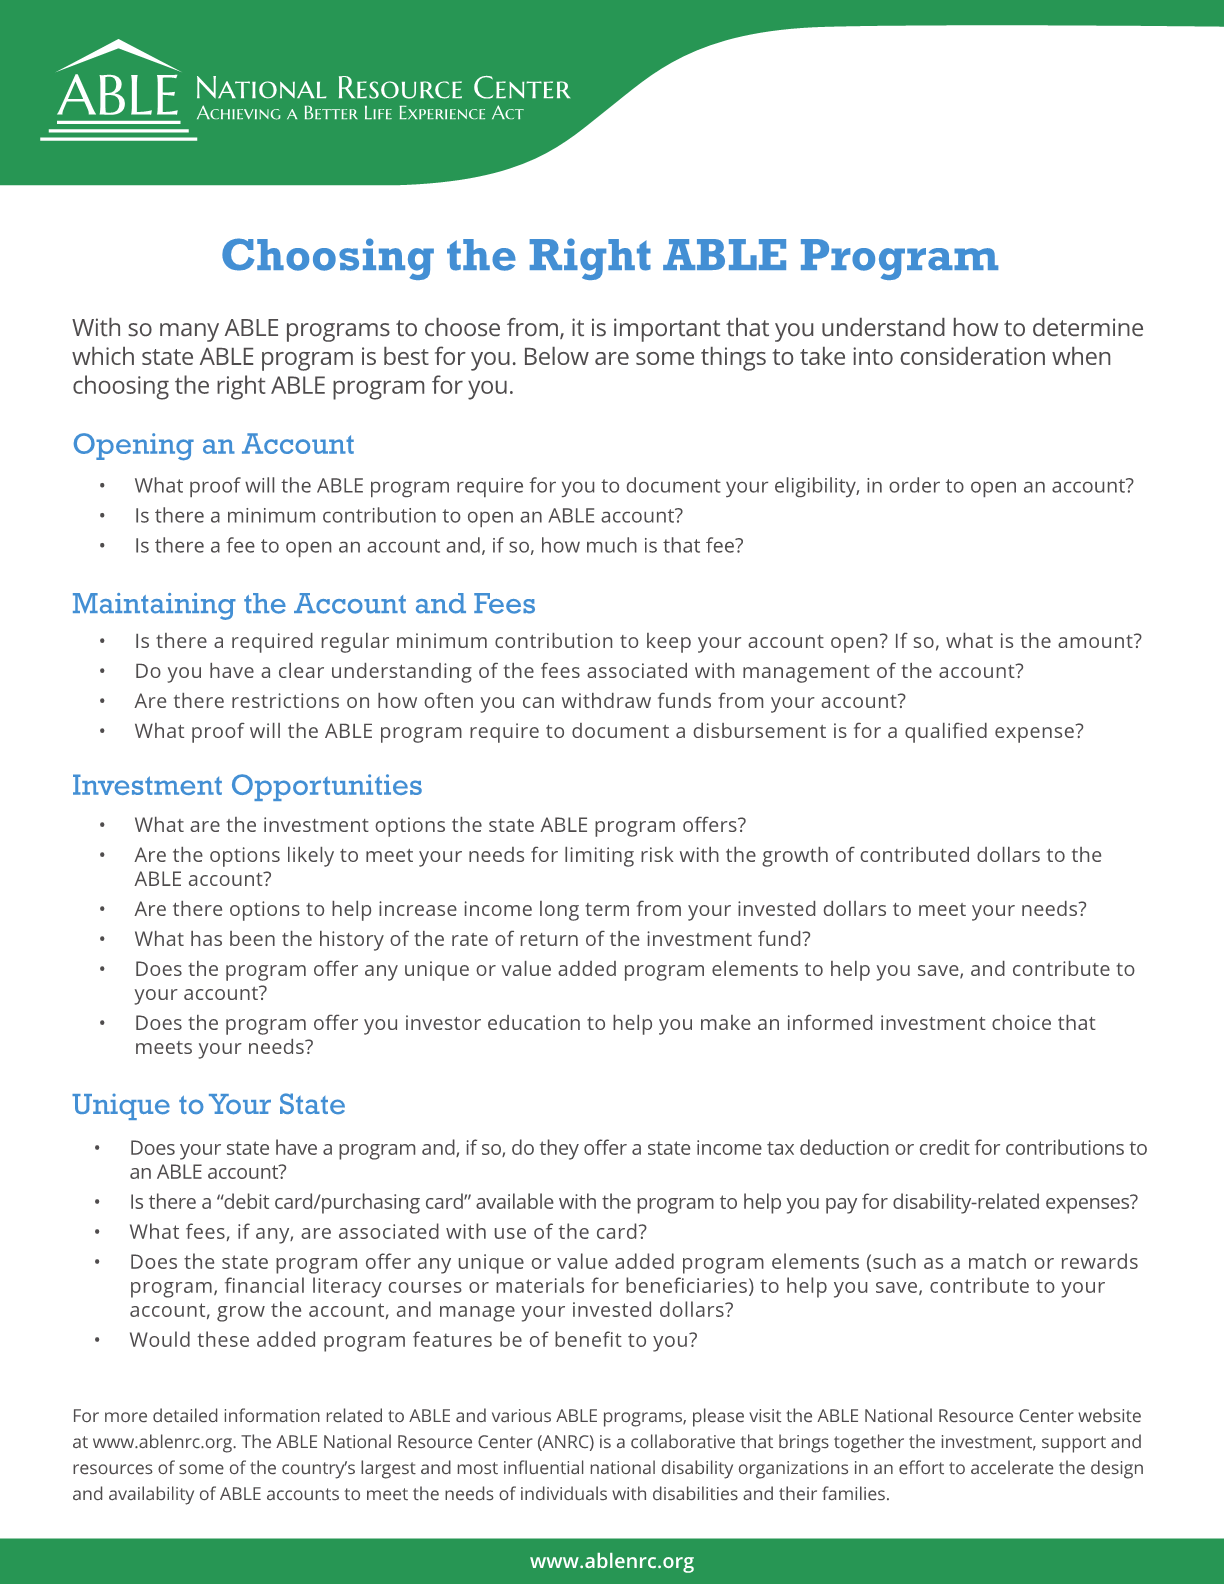 Choosing the Right ABLE Program